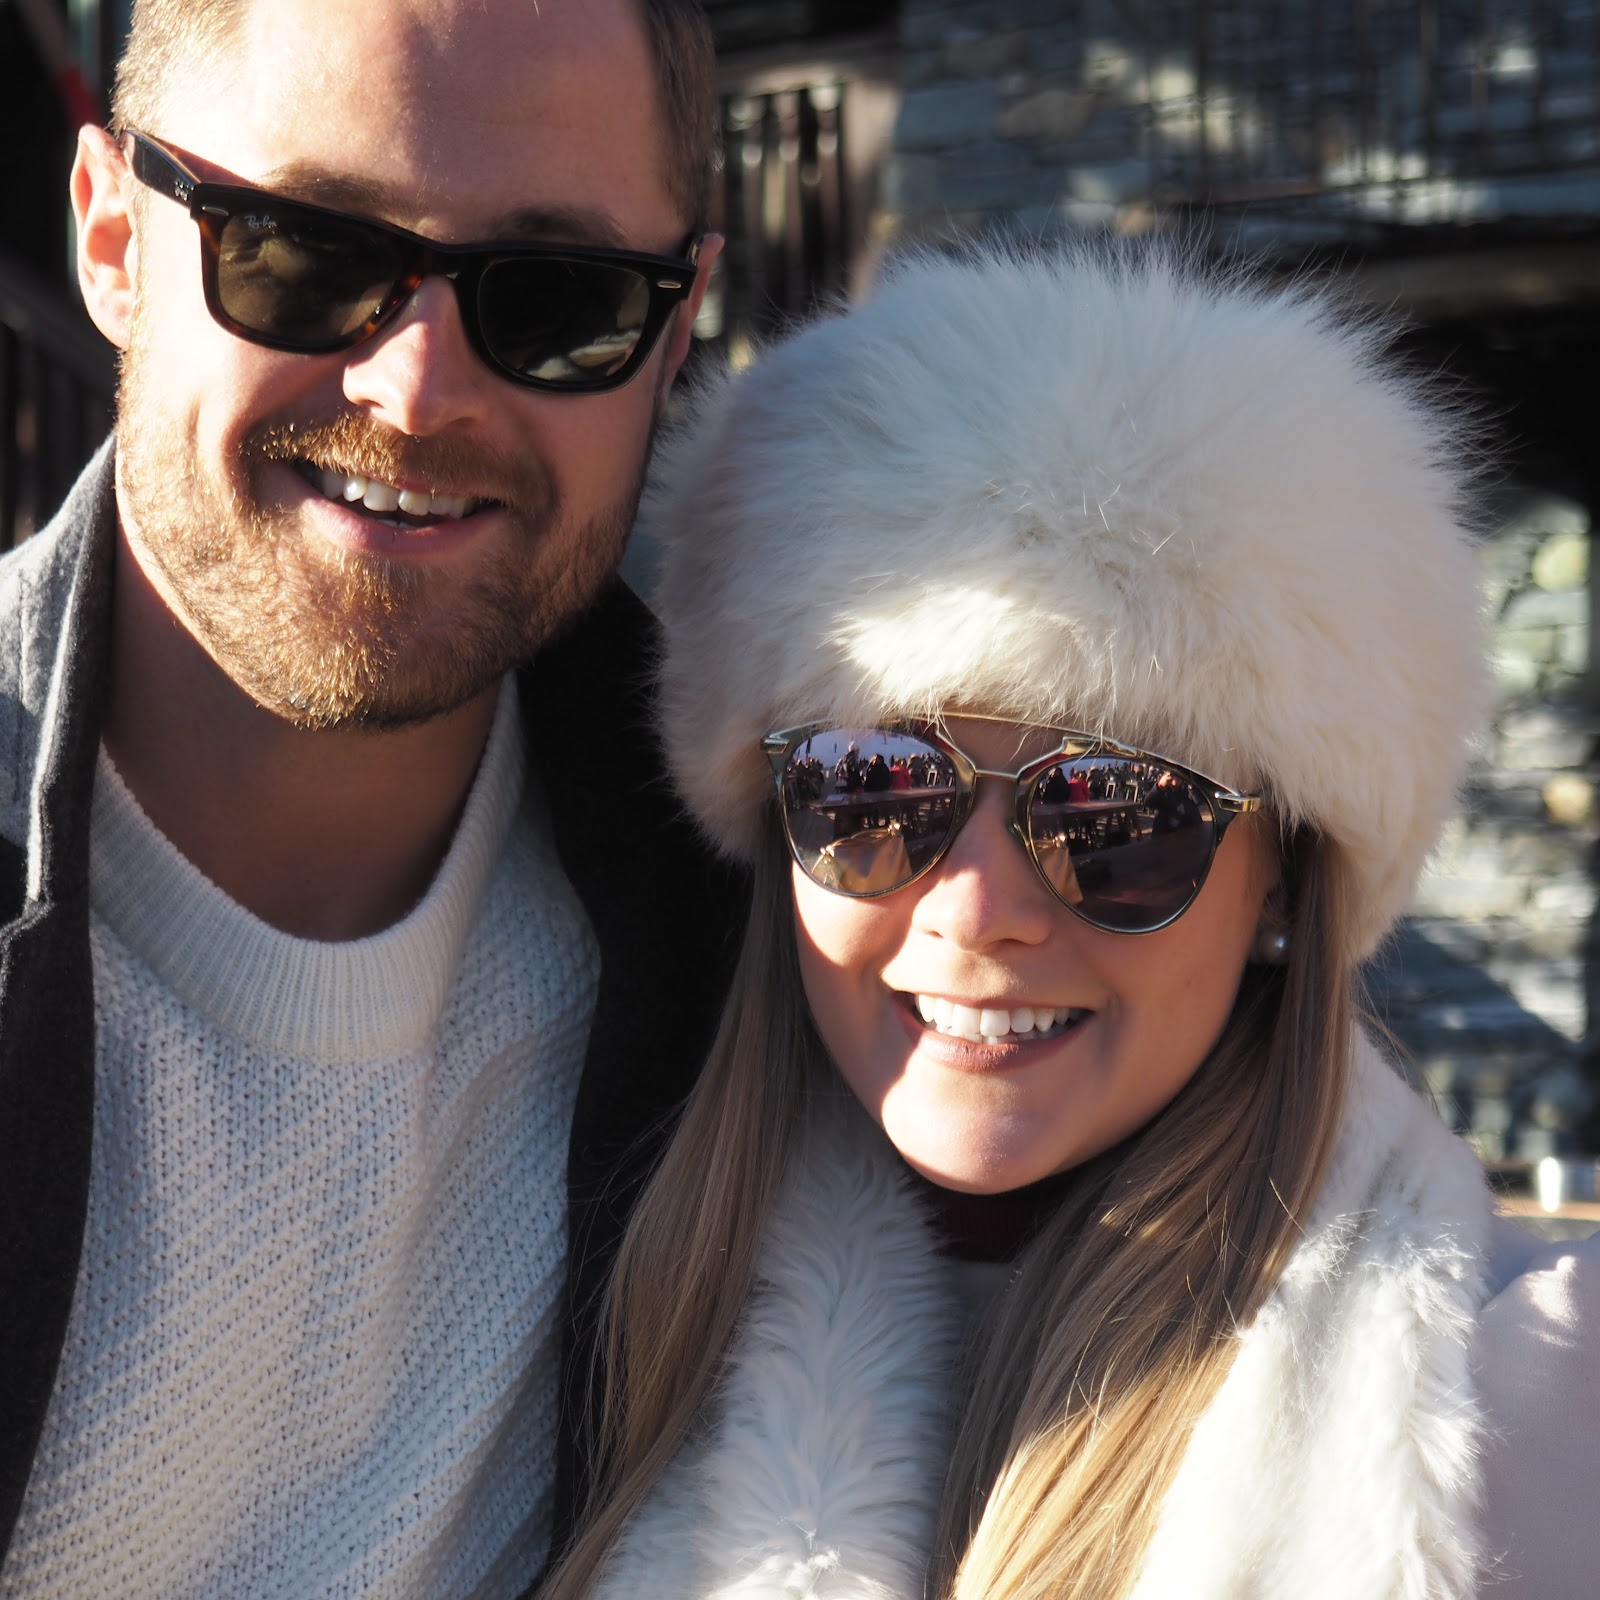 Katie Matthews and Ben Heath at La Folie Douce, Val d'Isere, France